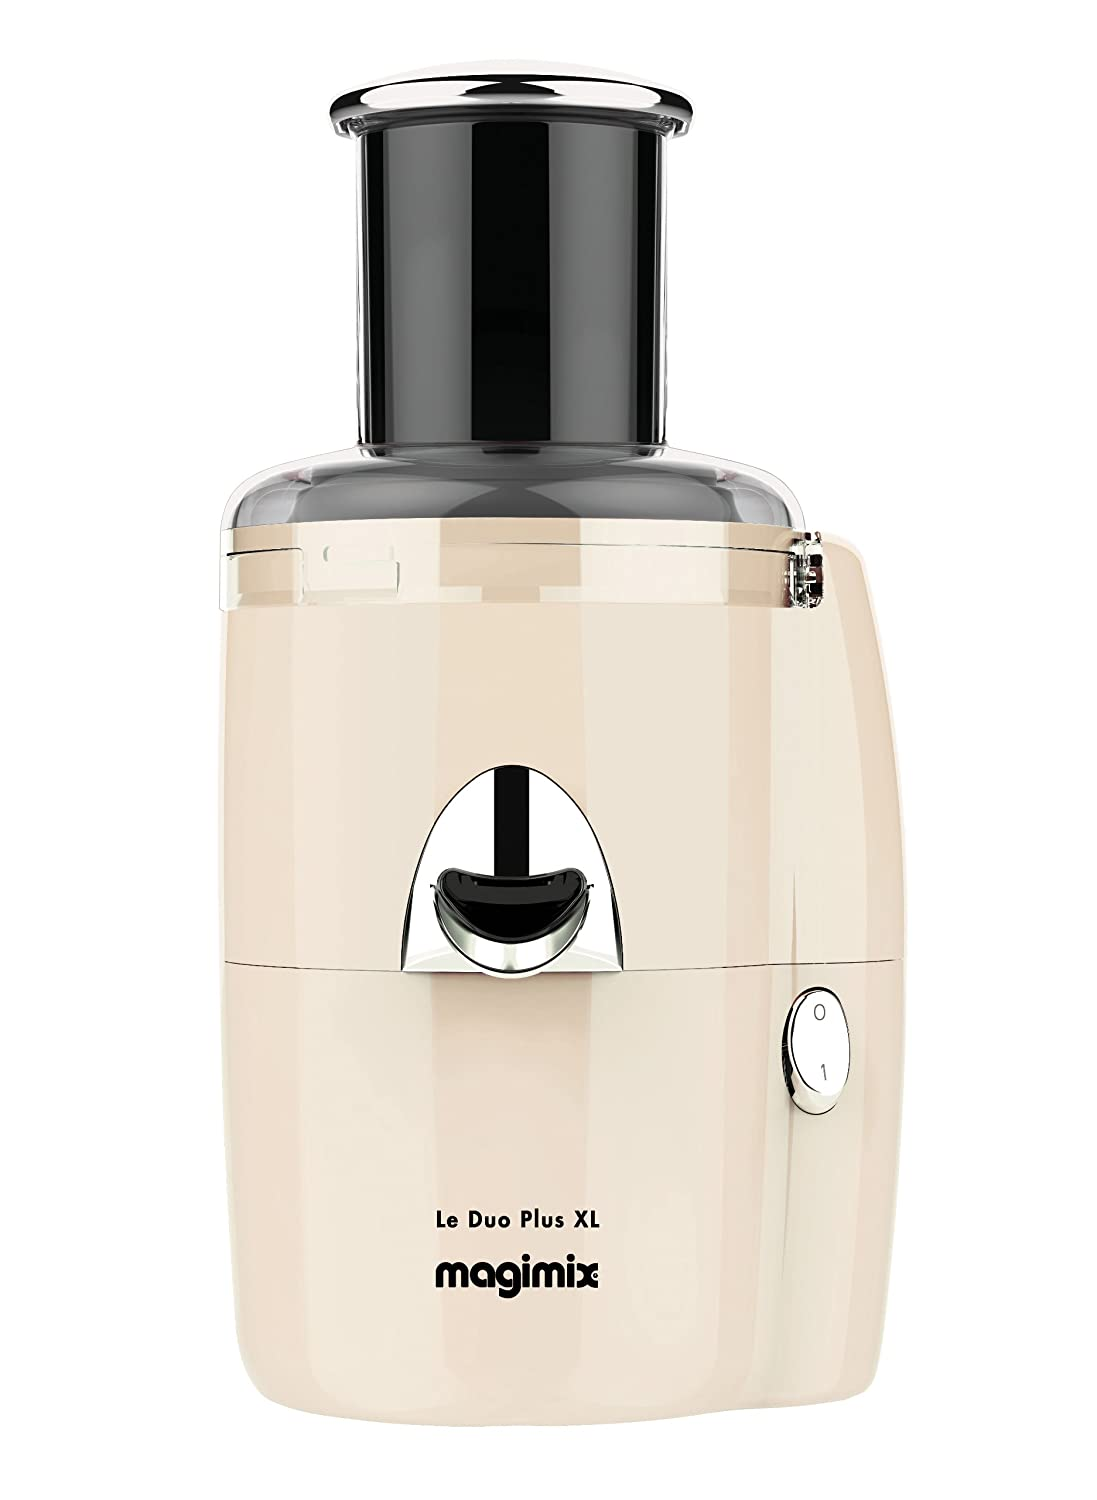 Magimix Le Duo Plus XL Juice Extractor, Black 18045